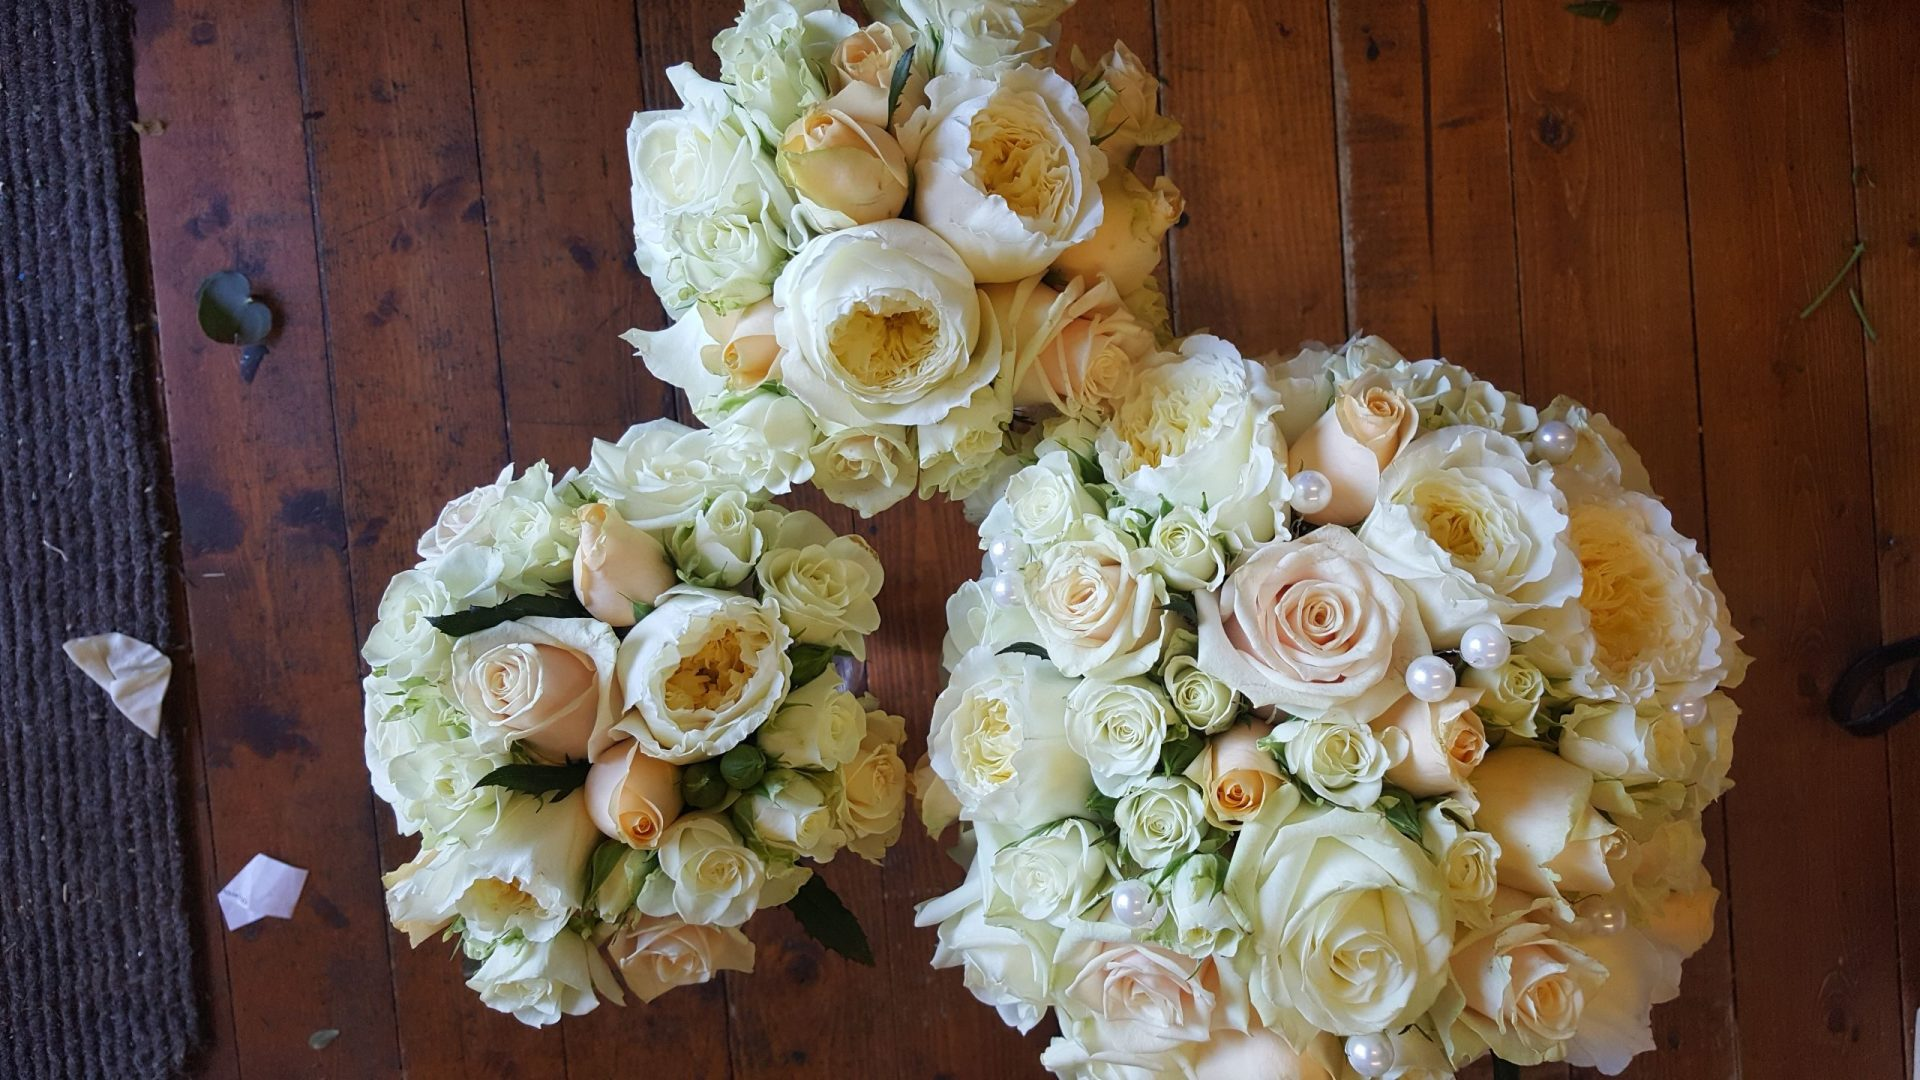 White & Cream Rose Bouquets